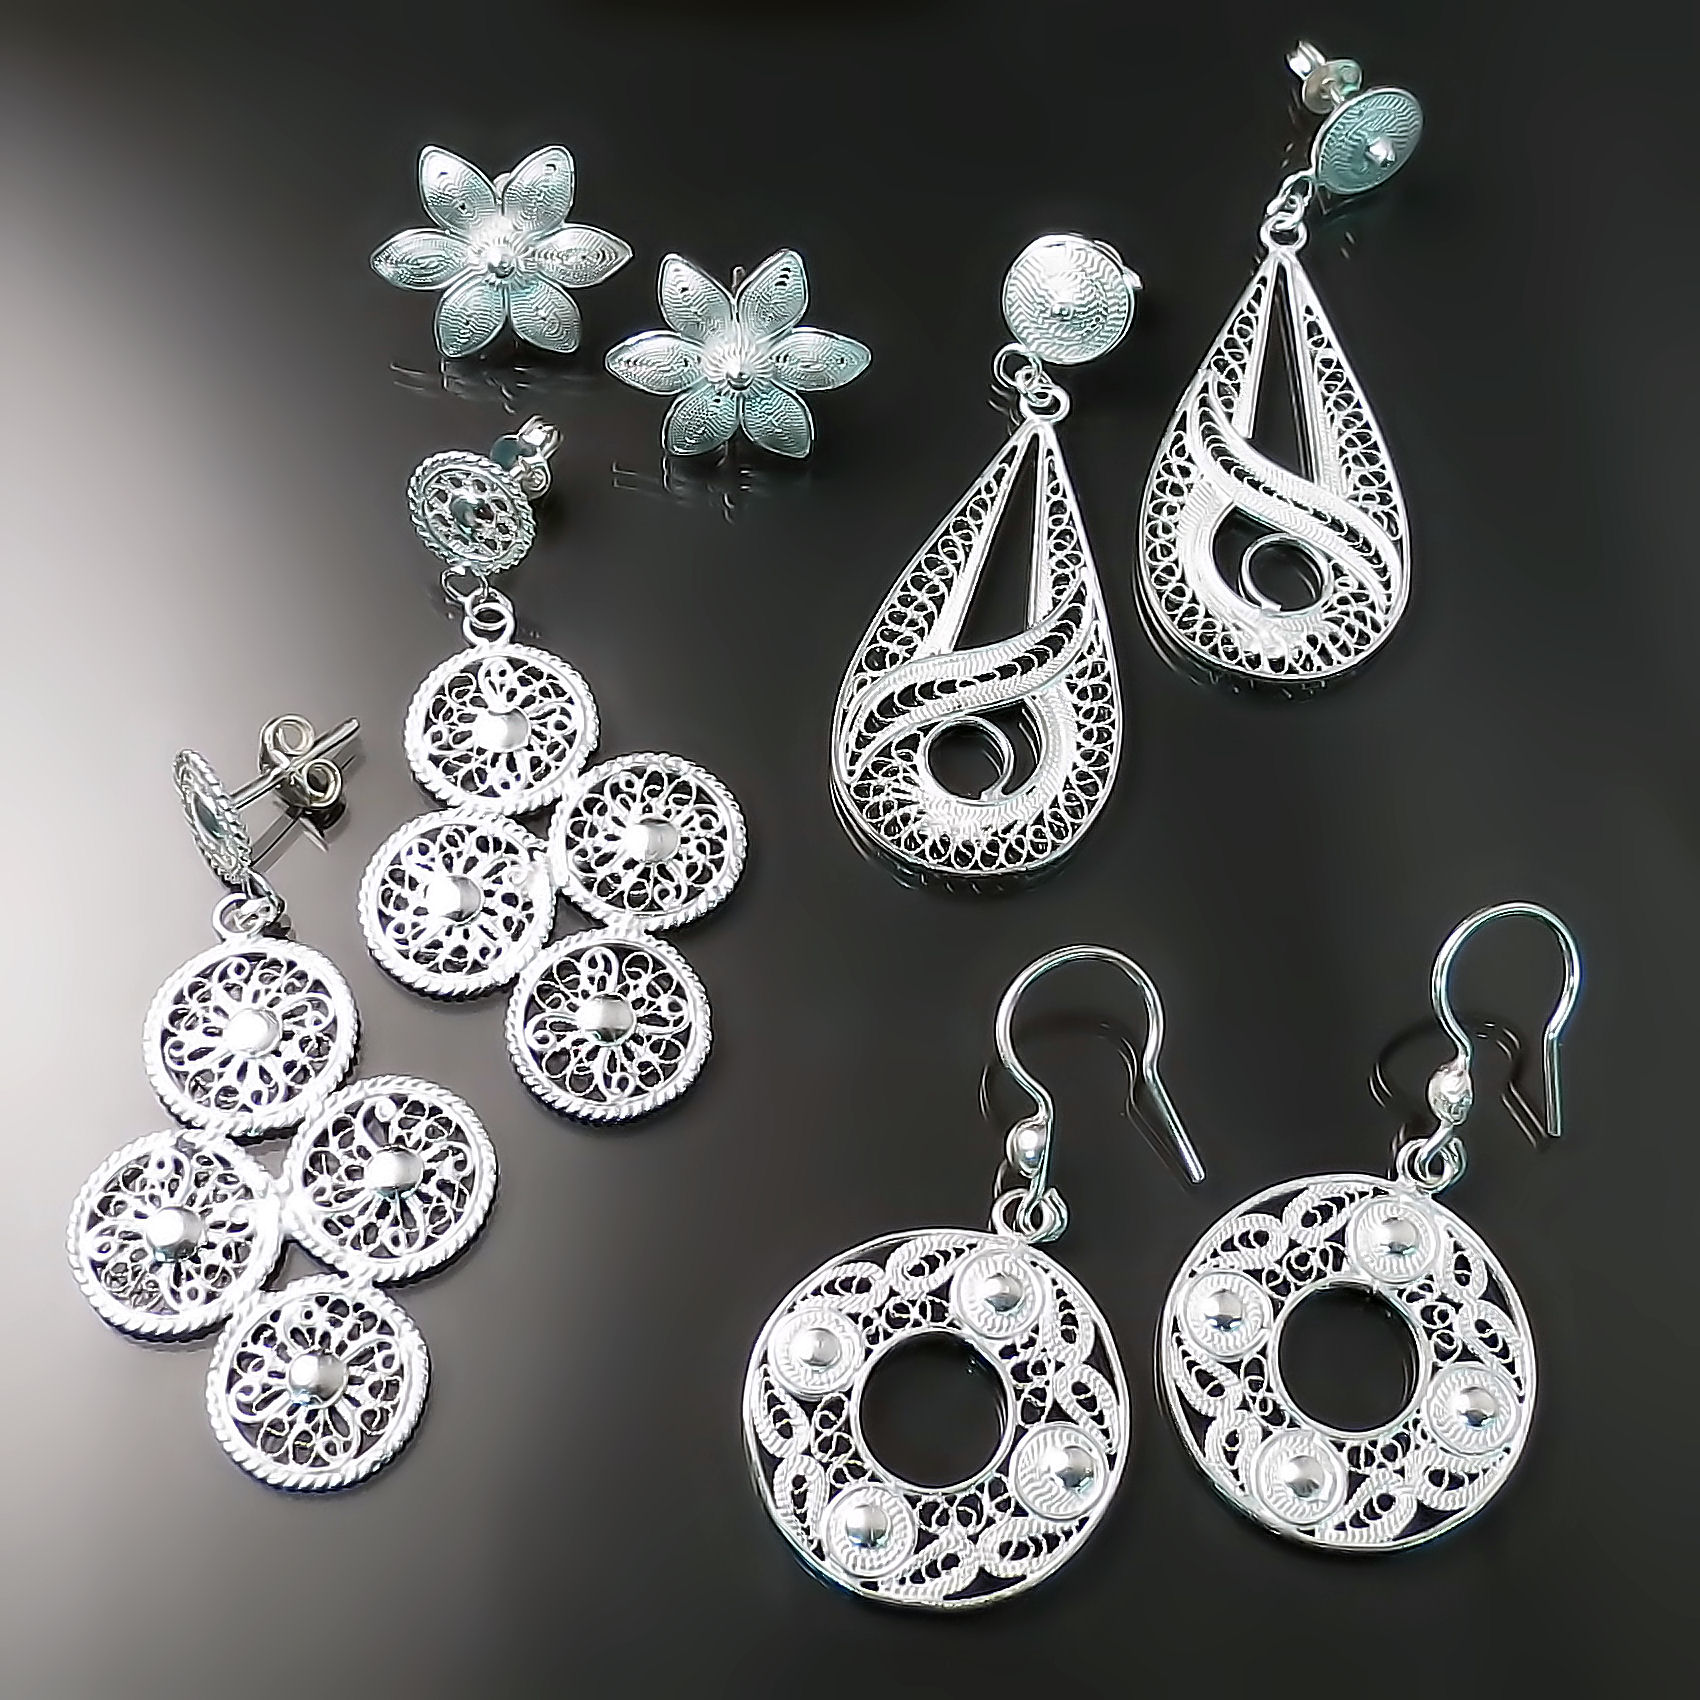 silver filigree jewellery earrings